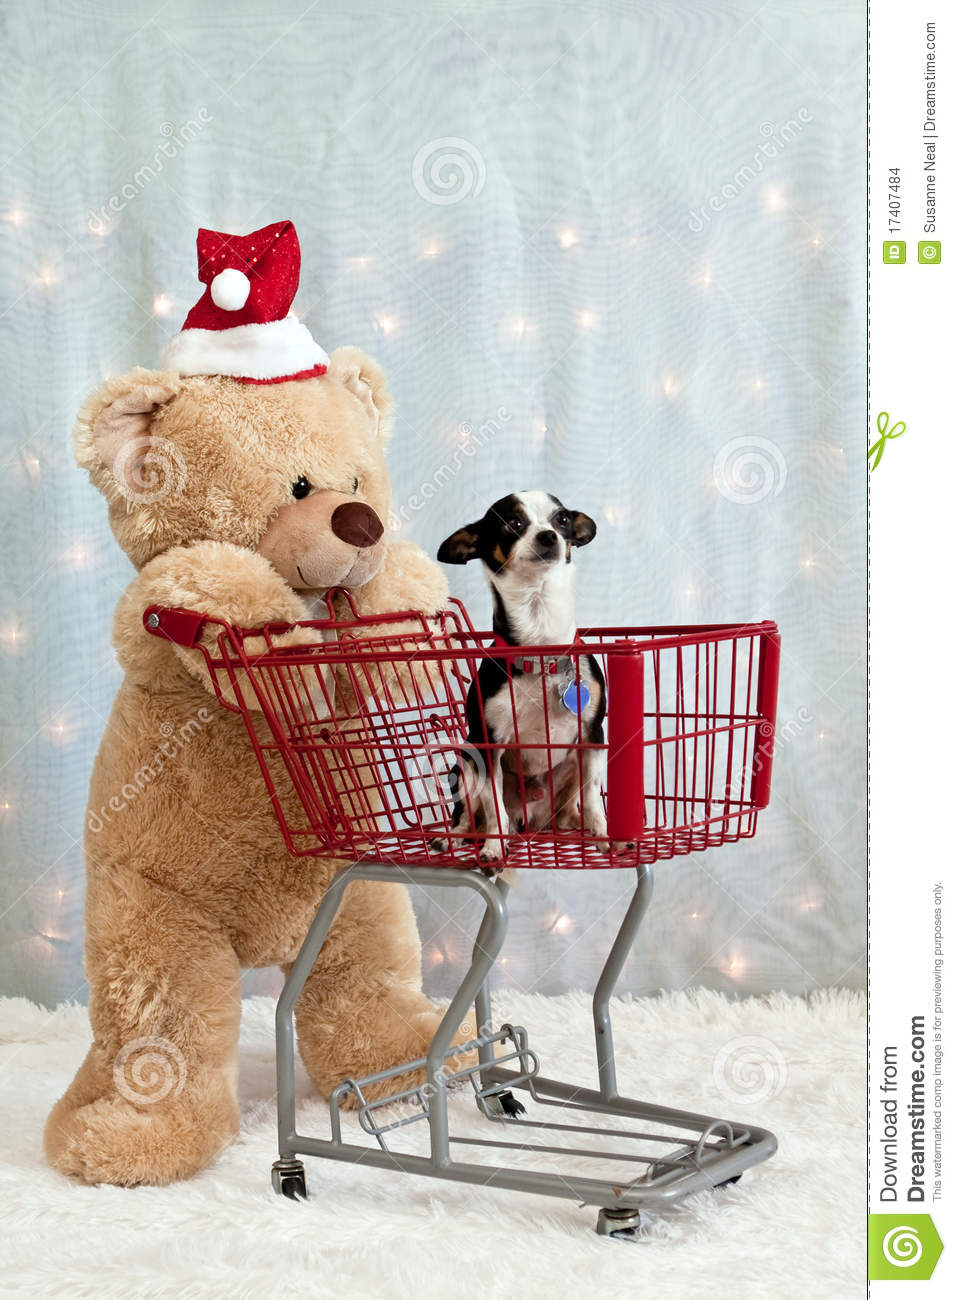 teddy bear  shopping cart  chihuahua stock images